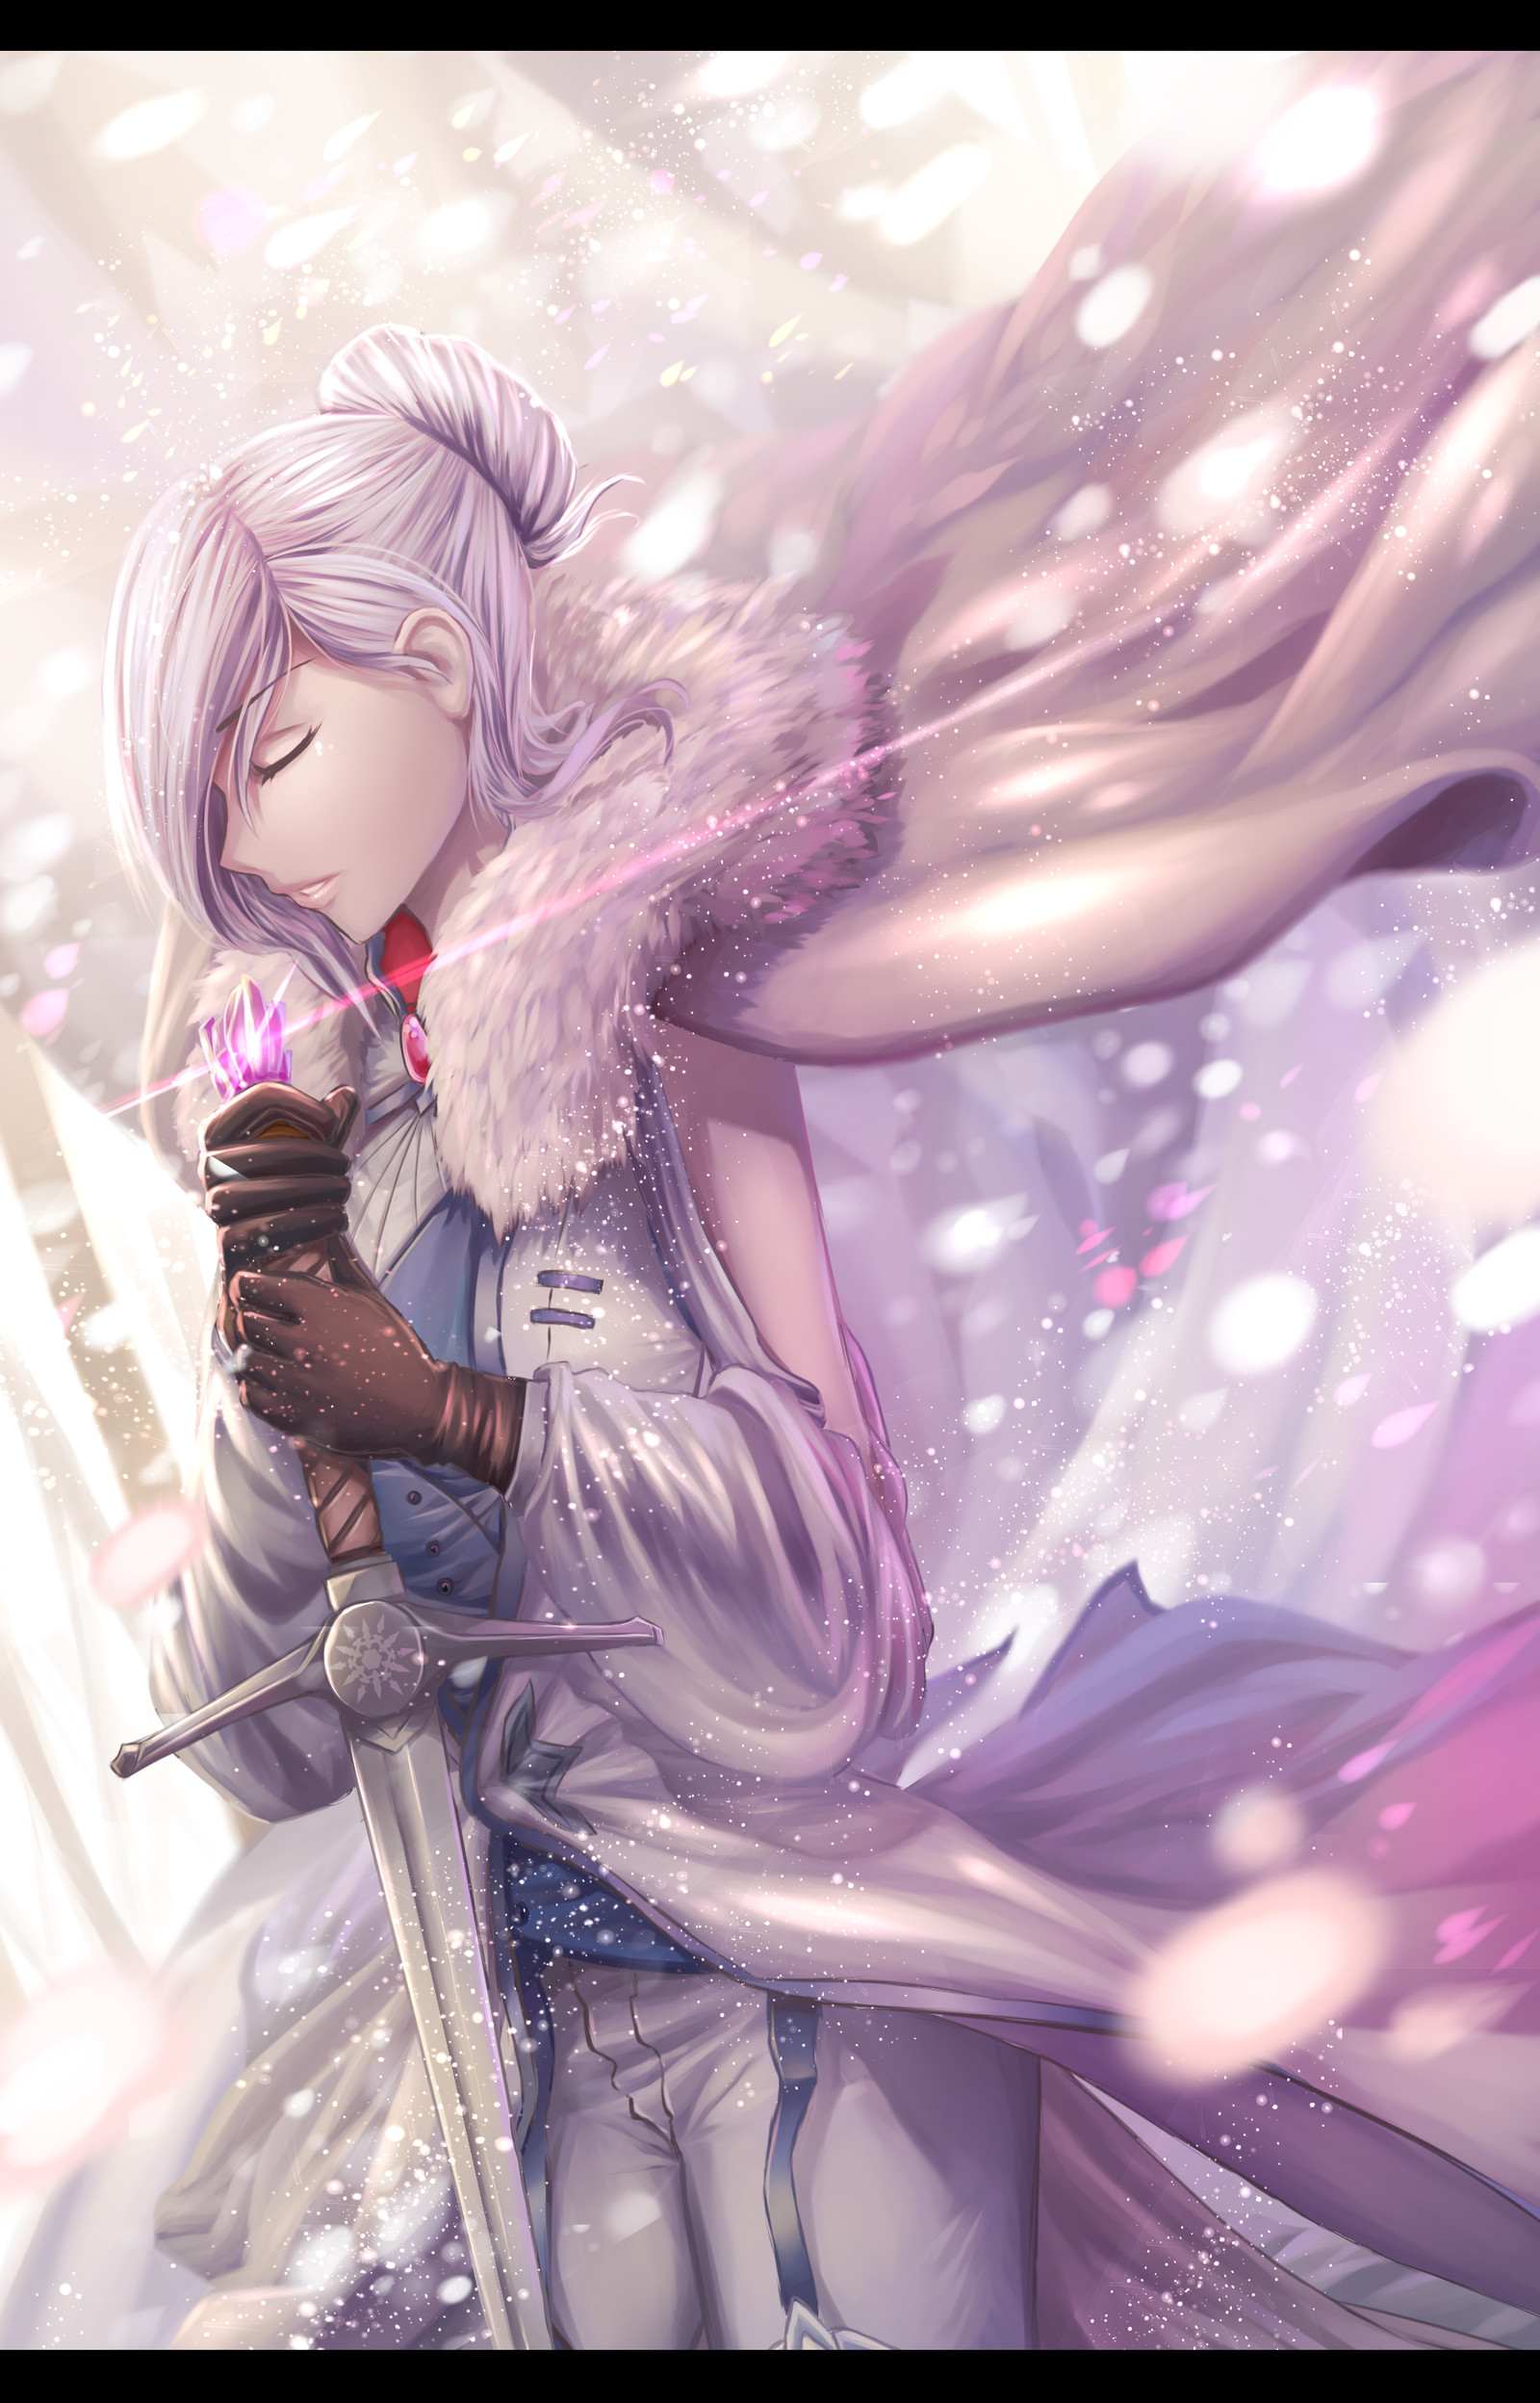 Bach do winter schnee unedited version by dishwasher1910 d99rj9p